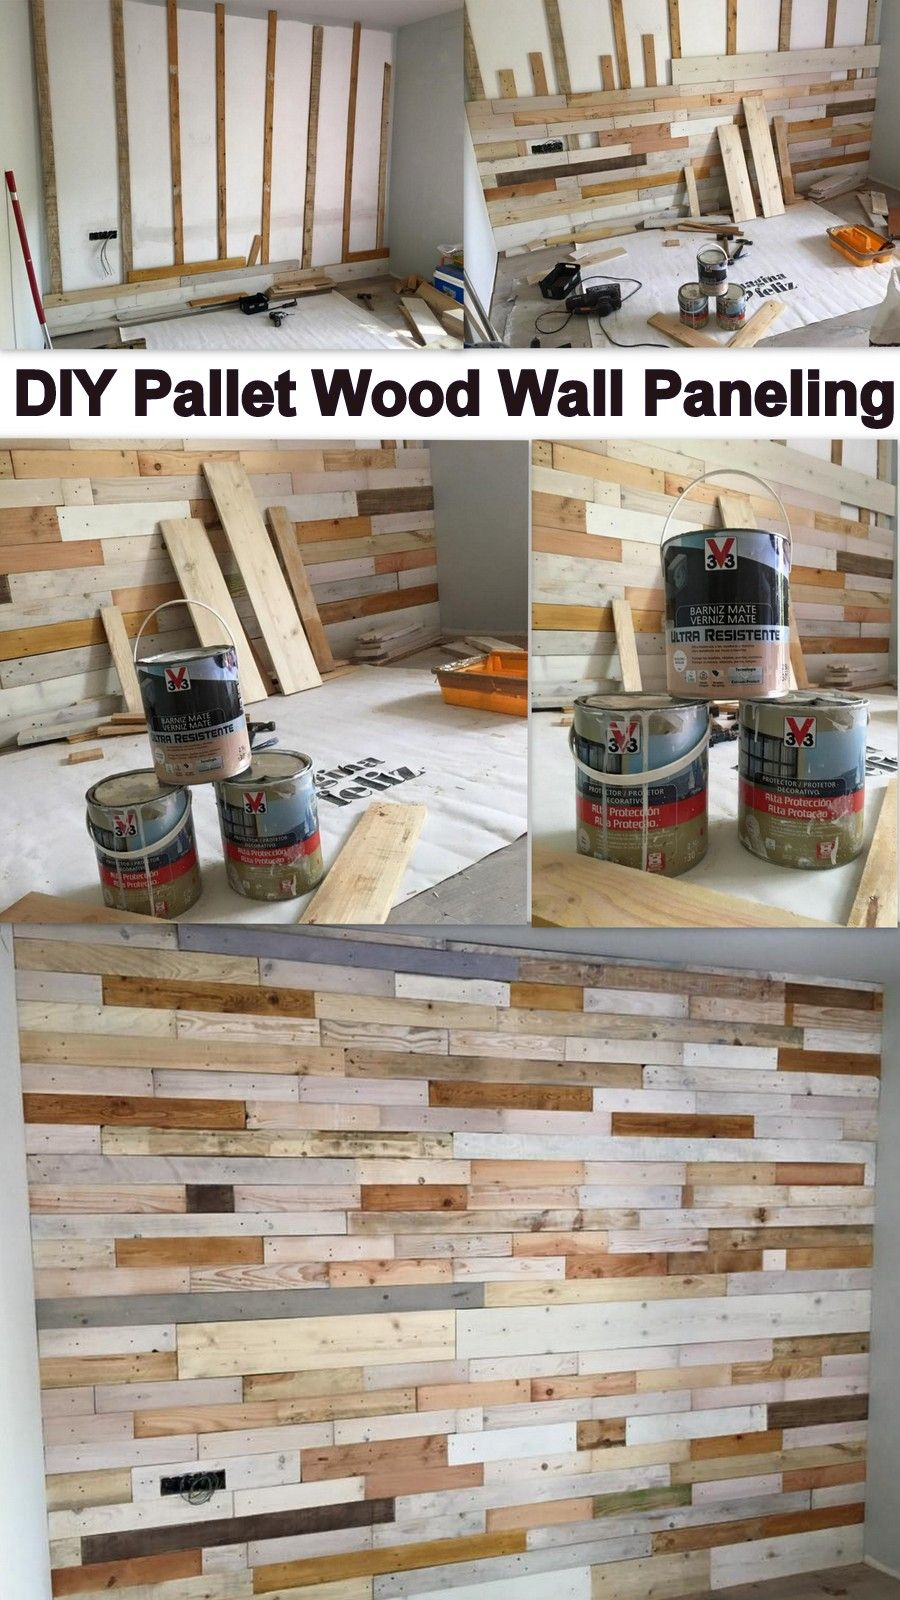 Wood Wall Cladding: DIY Pallet Wood Wall Paneling